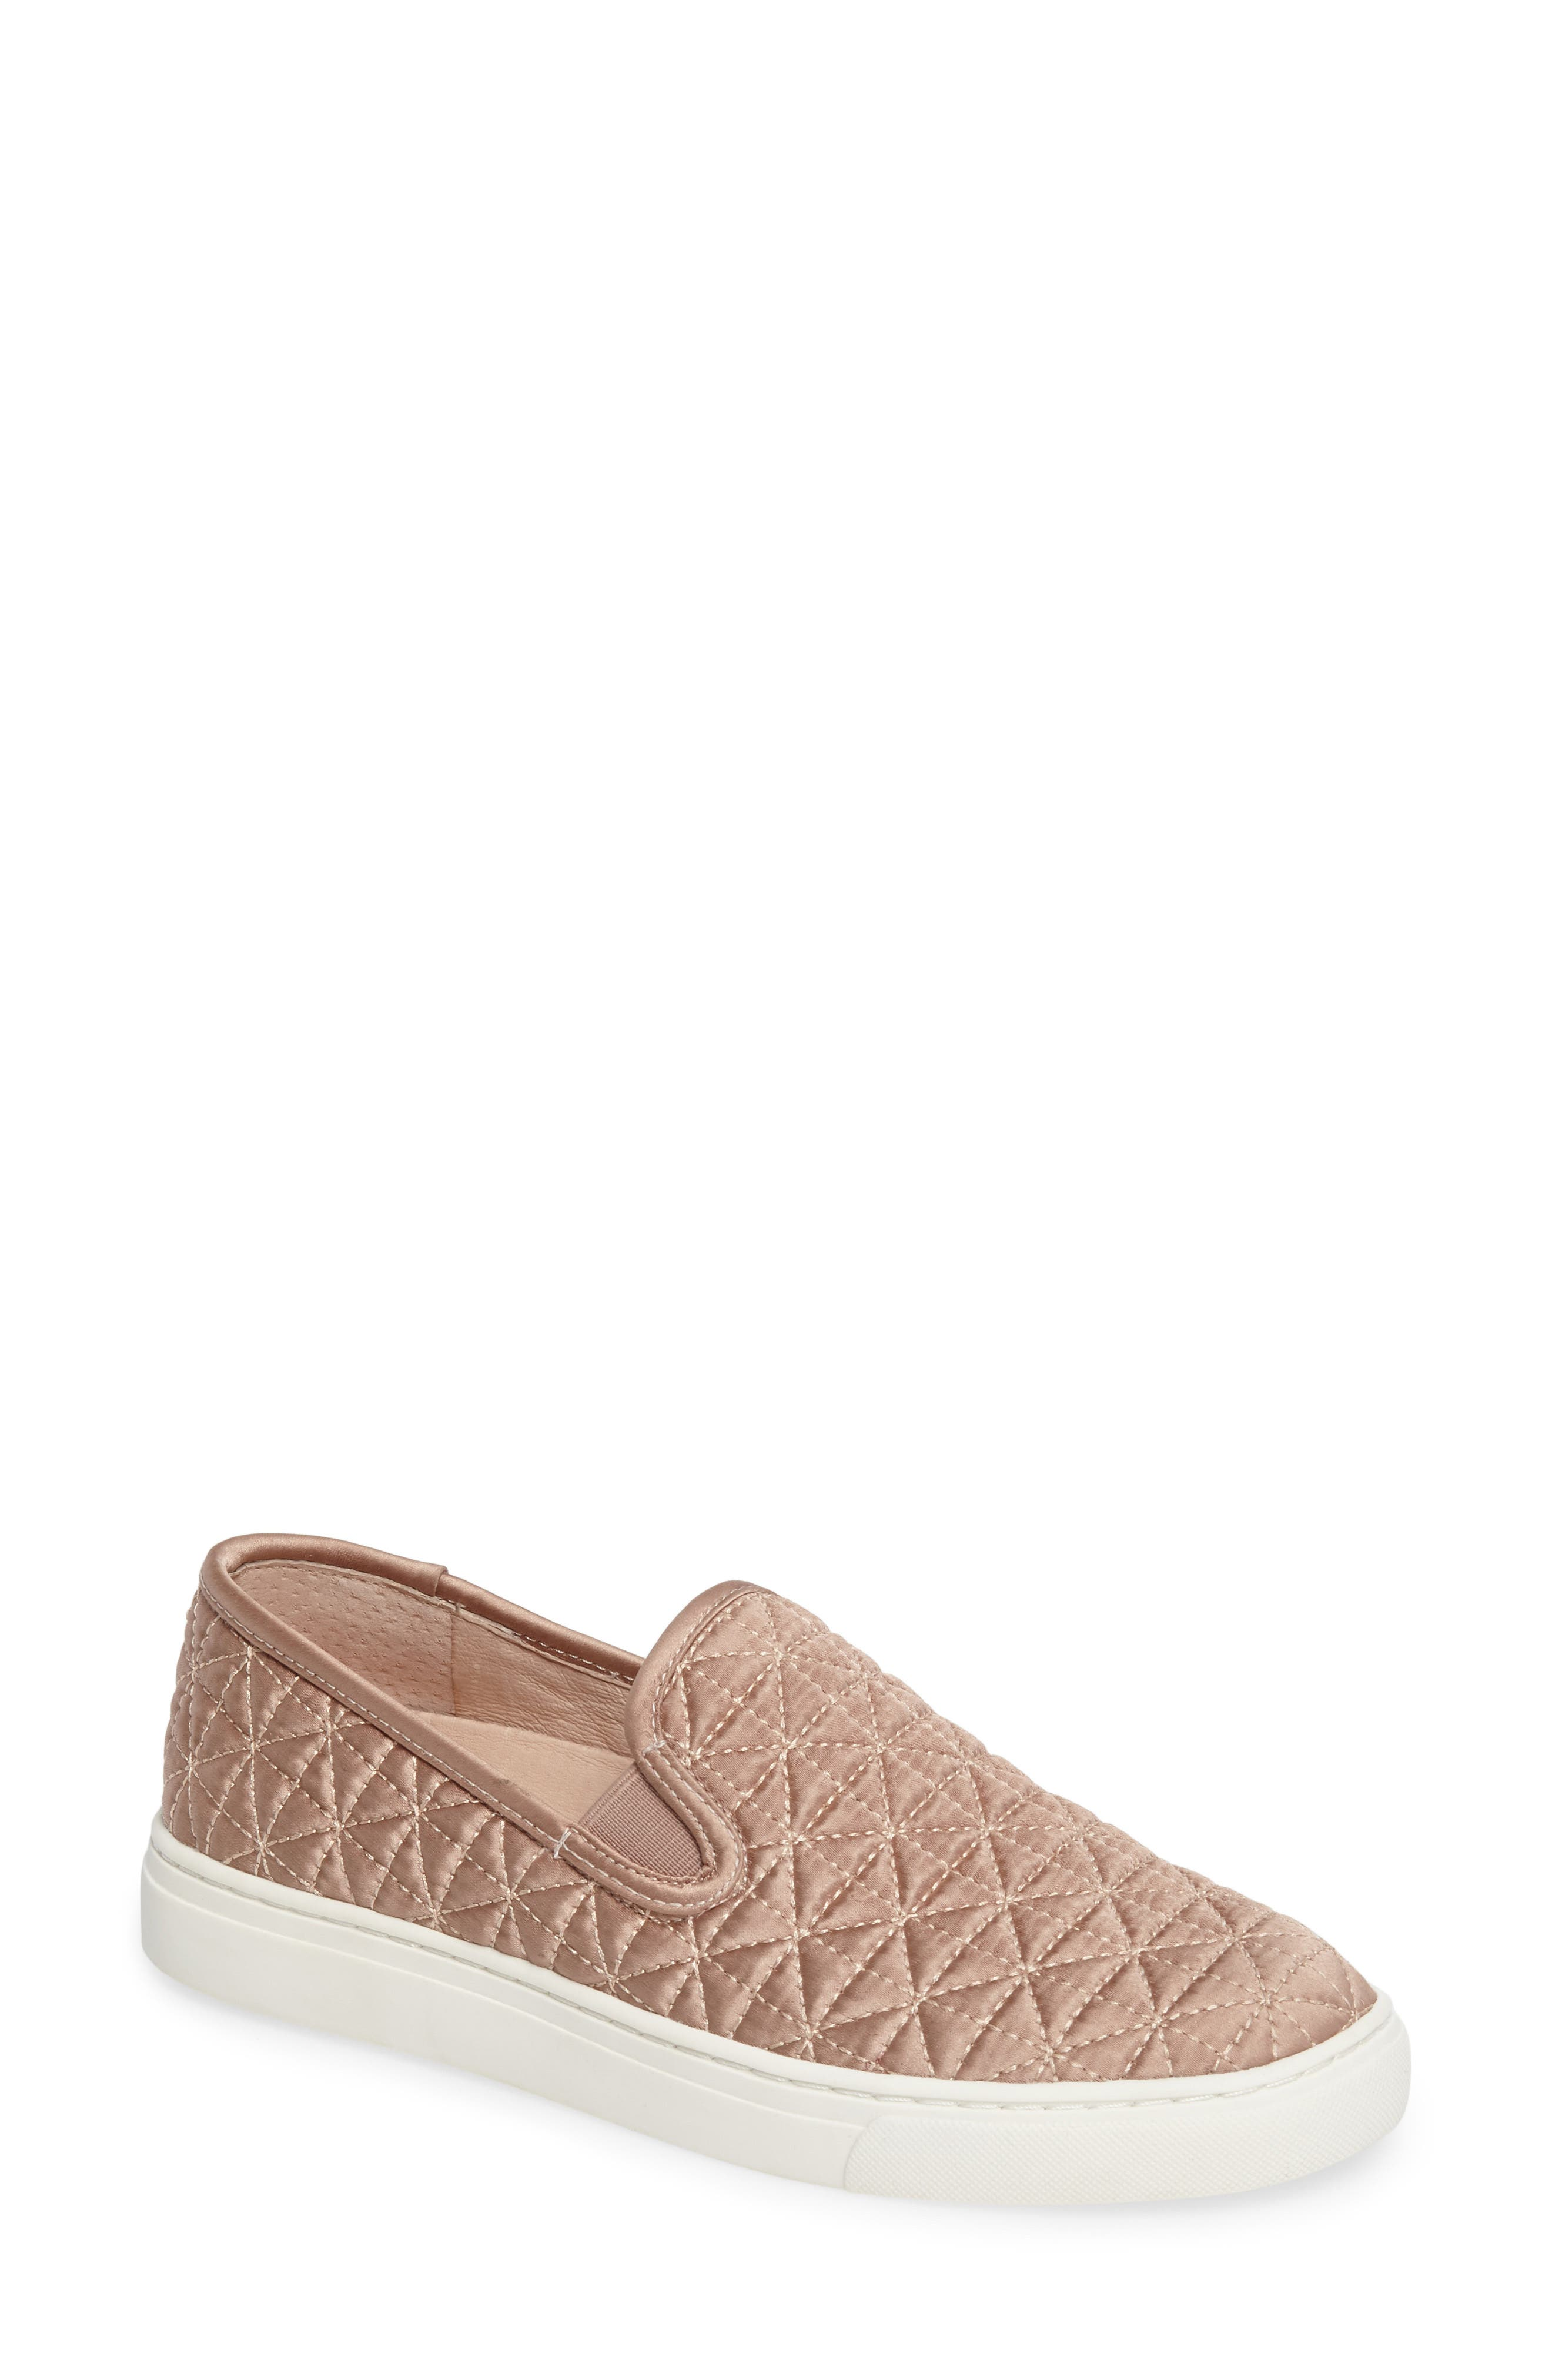 Main Image - Vince Camuto Billena Quilted Slip-On Sneaker (Women)